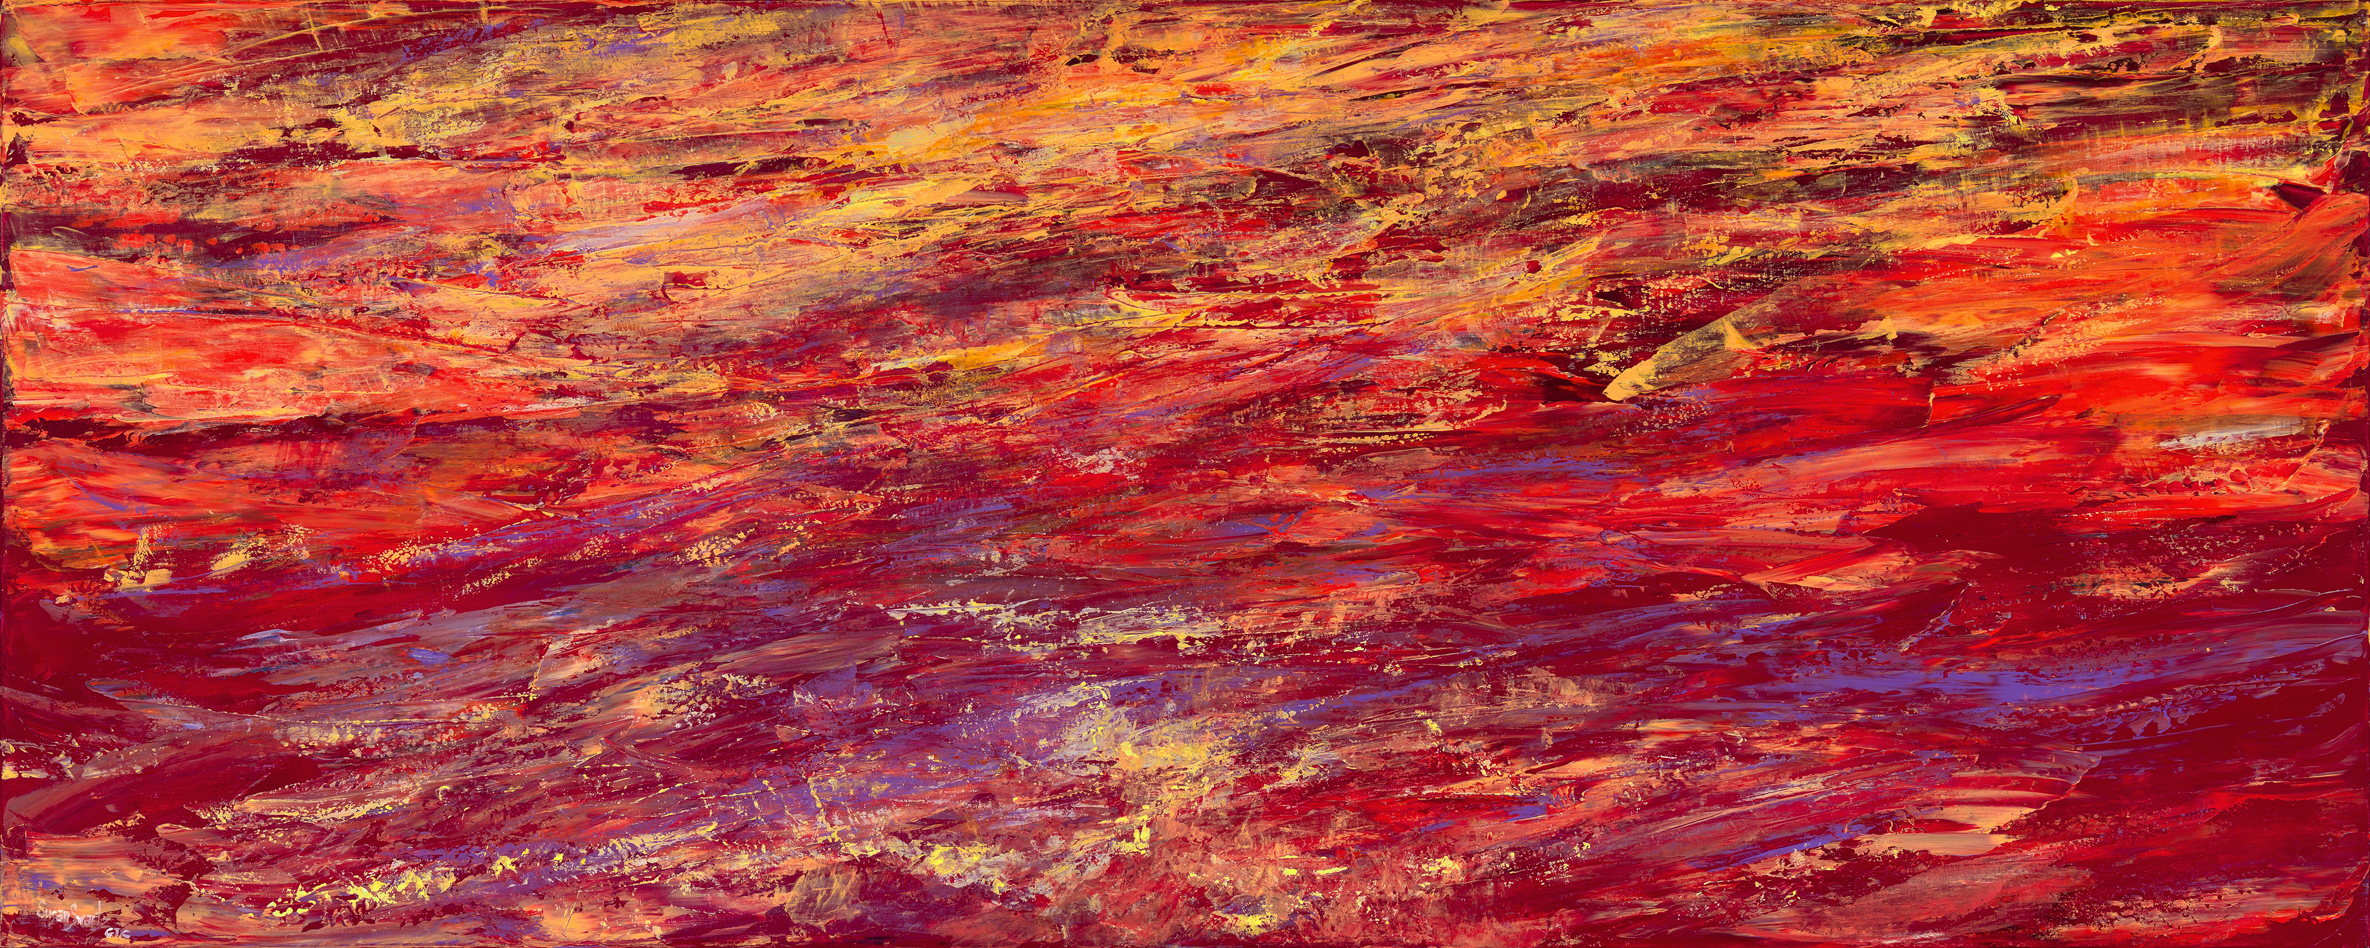 Water Study 009 60x24.png